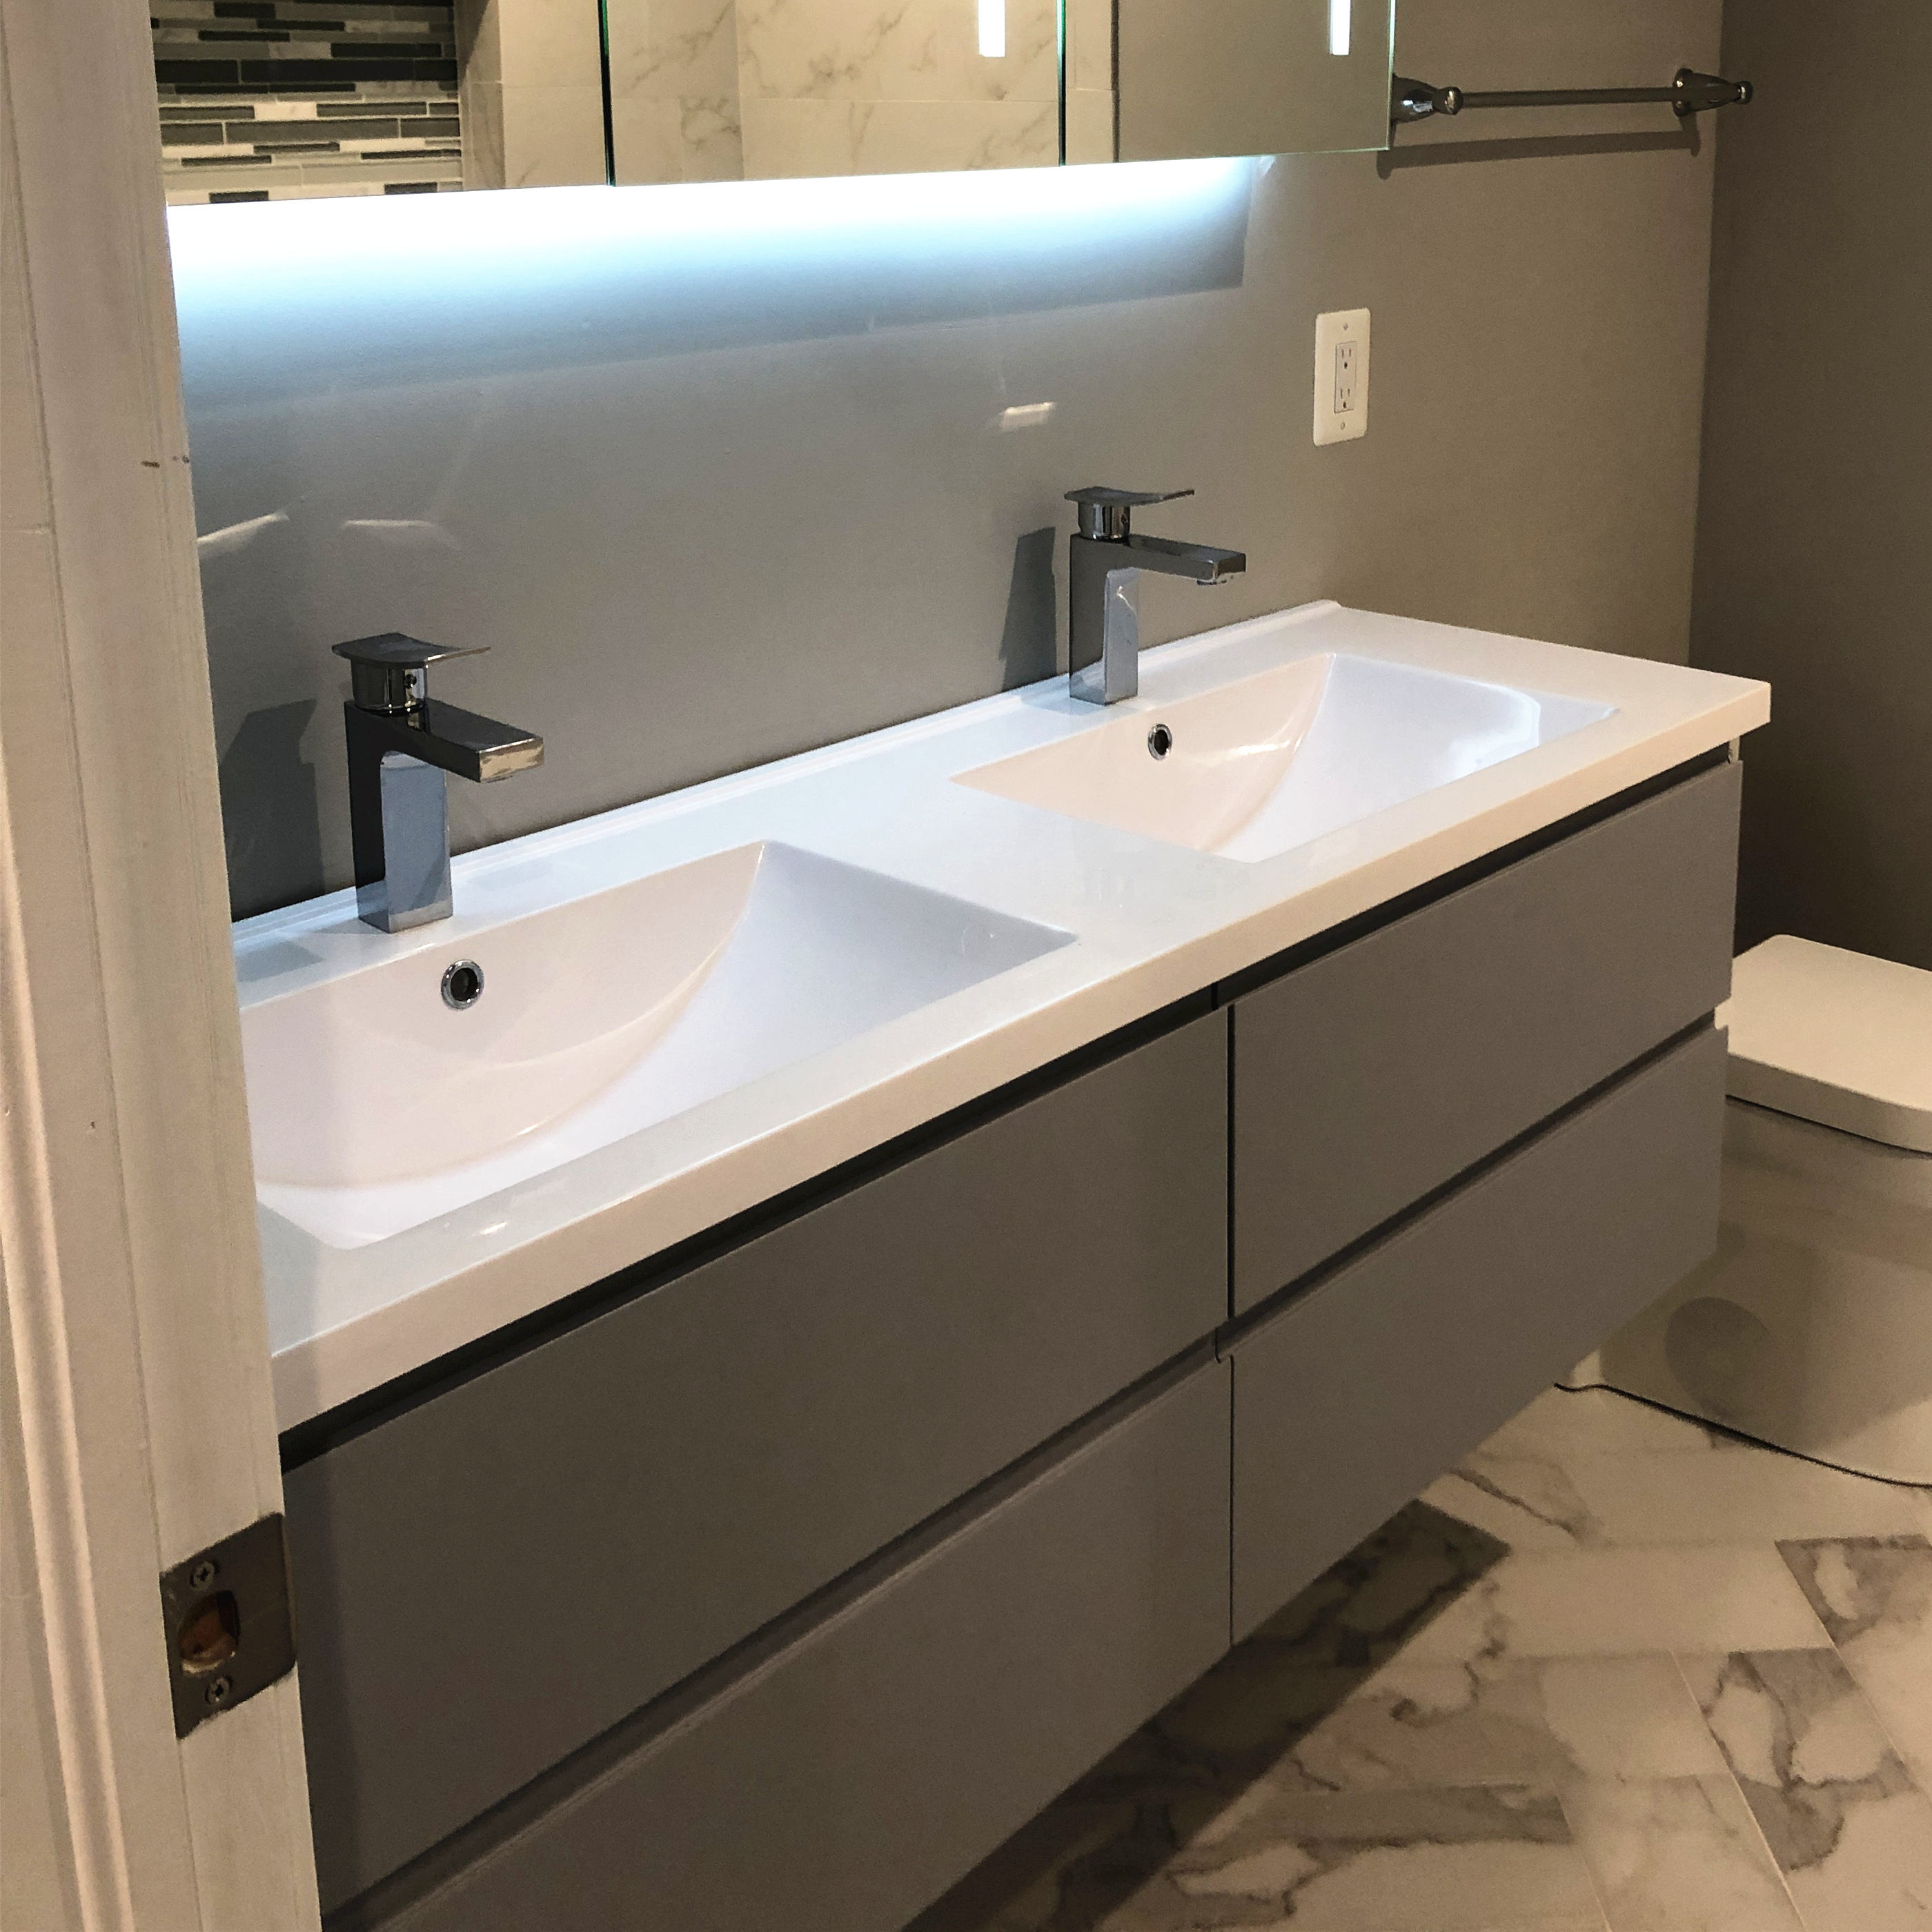 2020 Vermont Vanity Project In Washington Grey Bathroom Design Makeup Vanity Set With LED Mirror Wall Cabinet